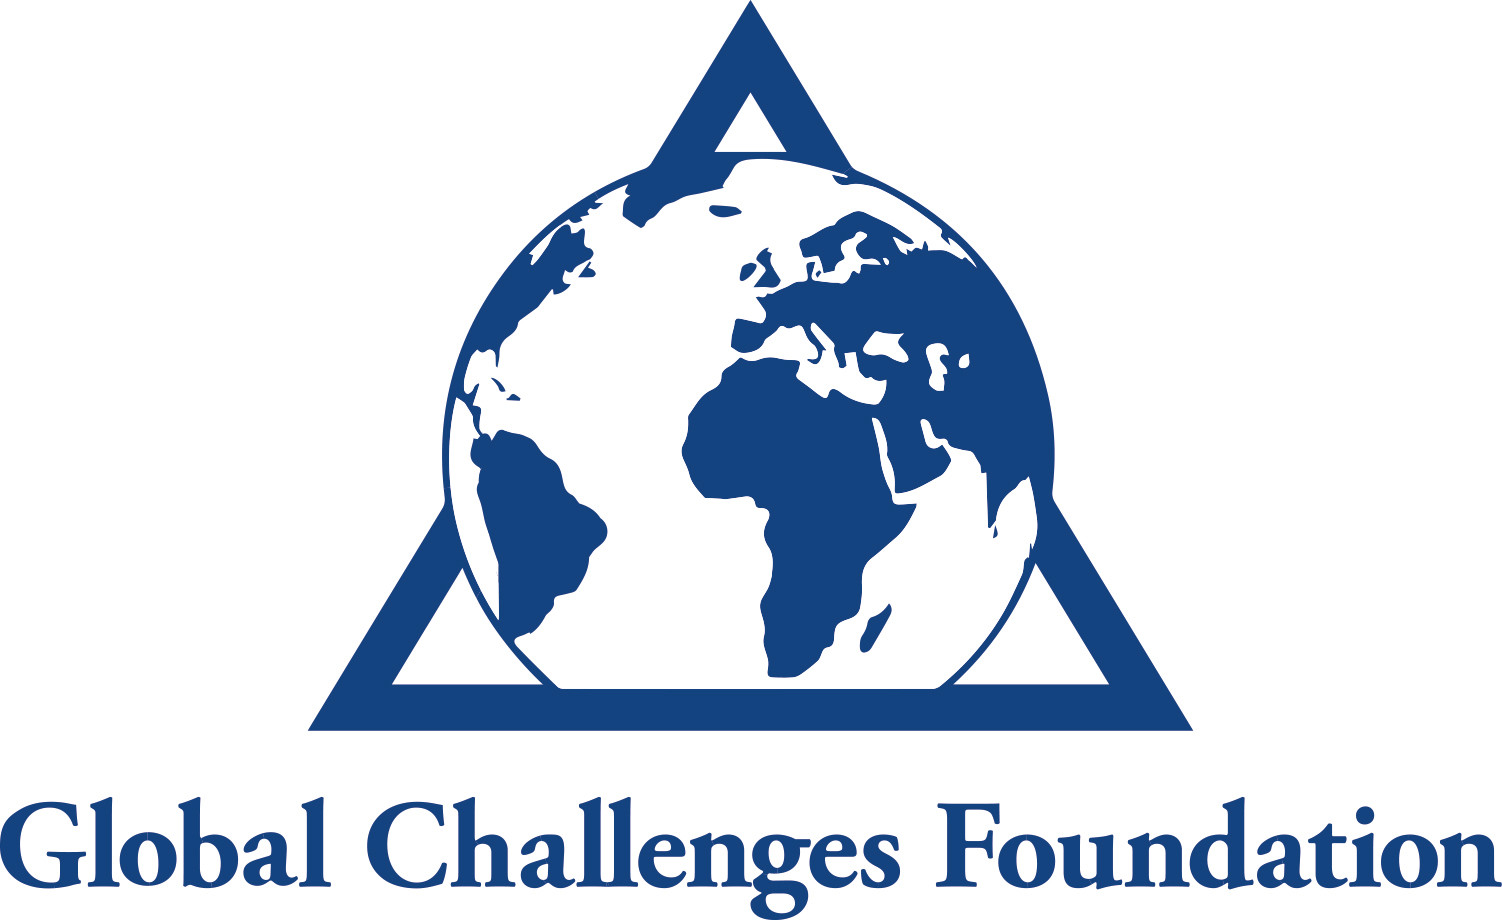 Global Challenges Foundation - The Global Challenges Foundation's objective is to contribute to minimising, preferably eliminating, the major global threats to humanity. We ran a workshop on the art of editing with the Global Challenges Foundation, and our founder/CEO has worked with them as editor-in-chief since 2016.